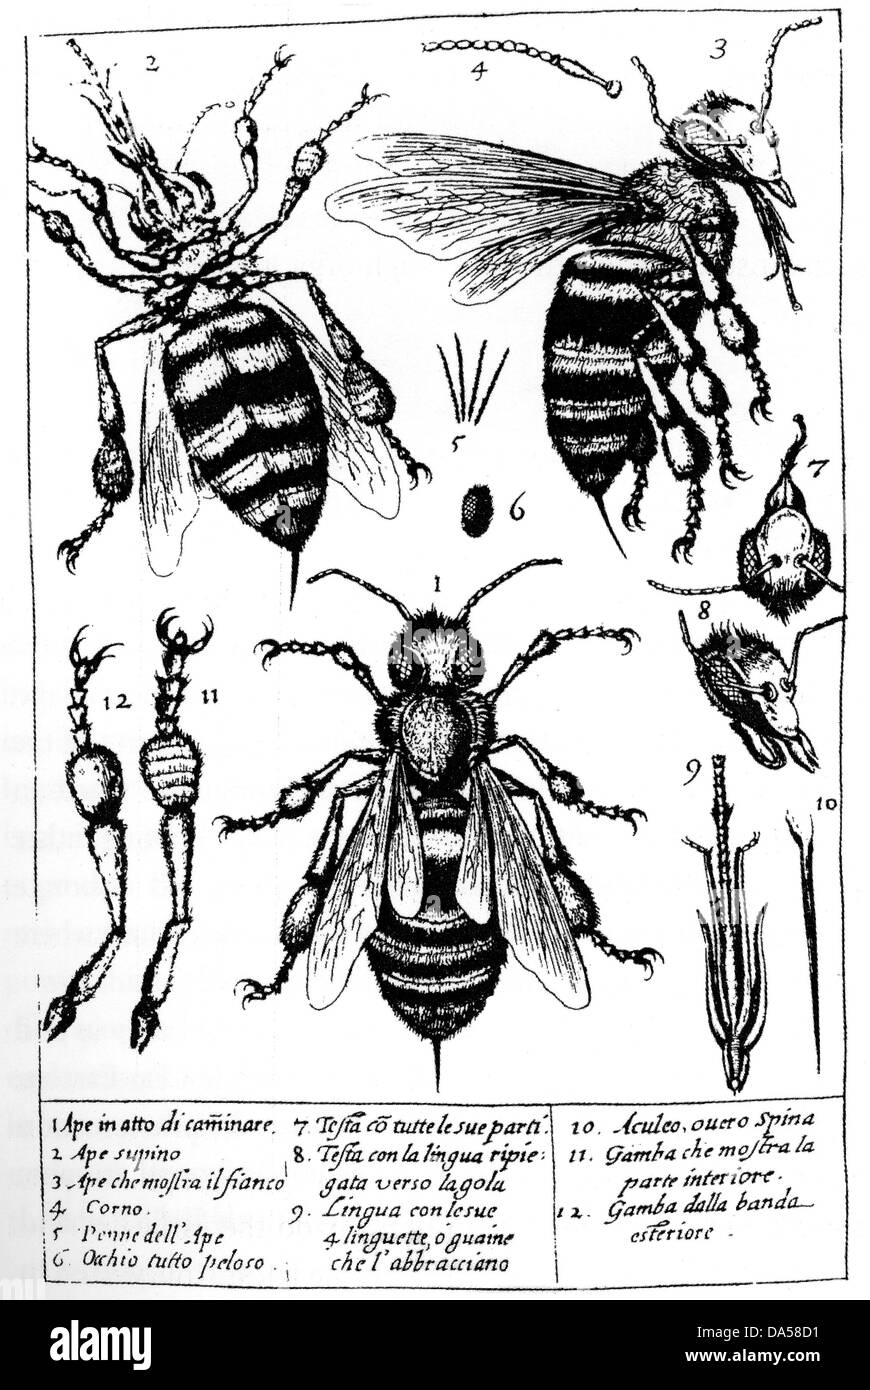 FRANCESCO STELLUTI (1577-1652) Italian polymath. Study of bees from his  Persio tradotto published in 1630